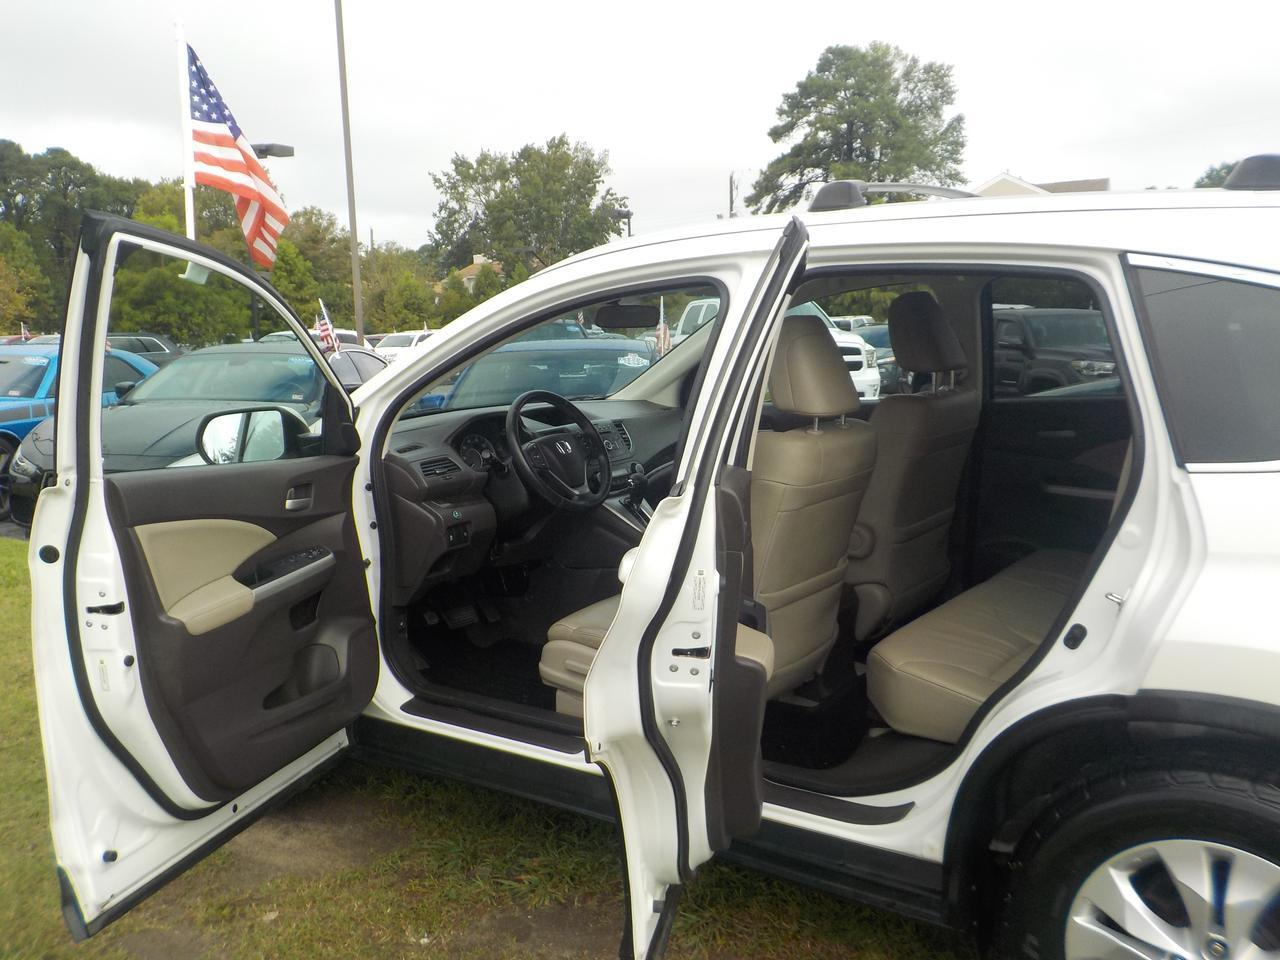 2014 HONDA CR-V EX-L, LEATHER, HEATED SEATS, BACKUP CAMERA, PARKING SENSORS, SUNROOF, ONLY 73K MILES! Virginia Beach VA